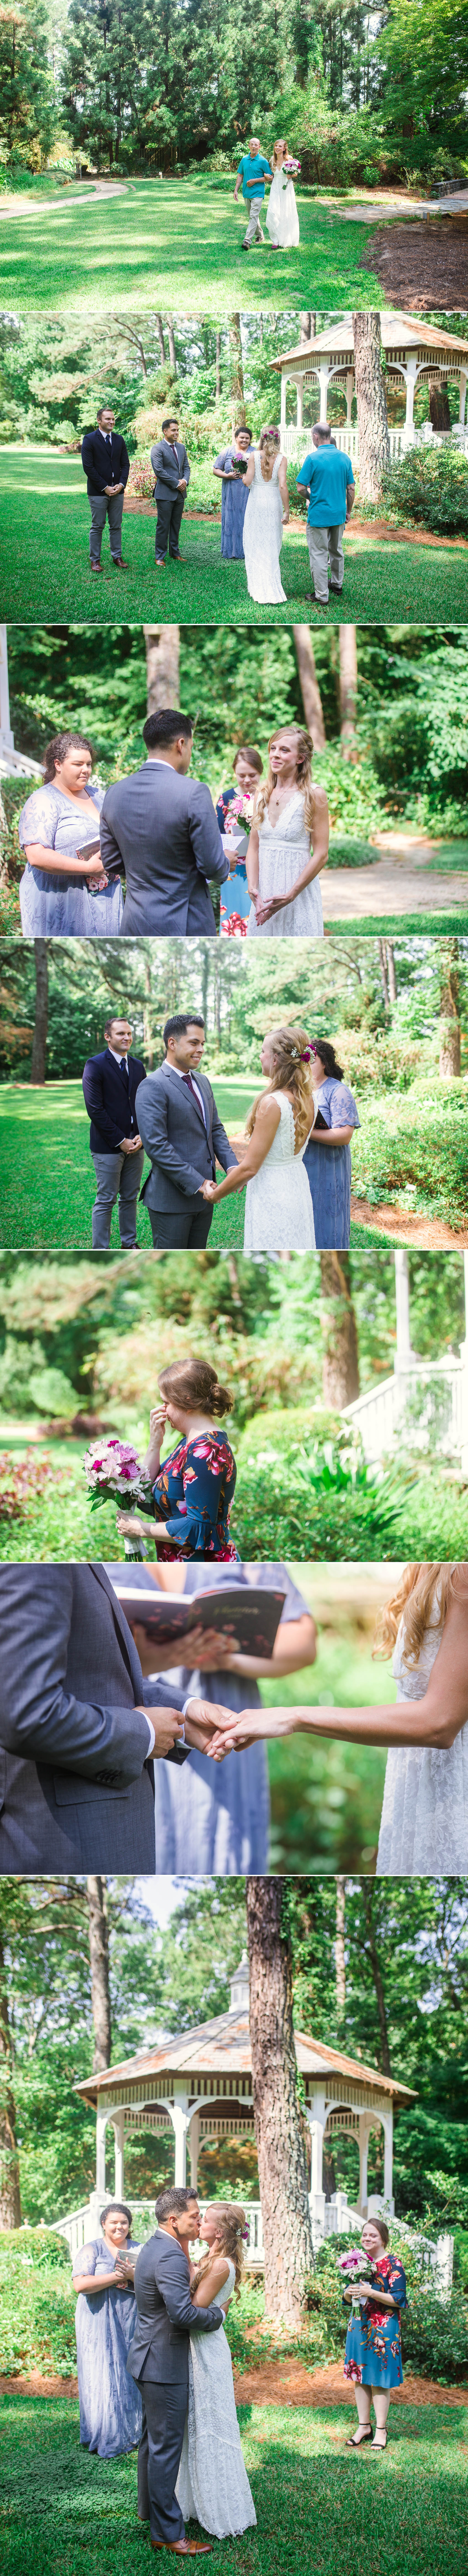 Ceremony - Kelly and Adam - Elopement at the Cape Fear Botanical Gardens - Fayetteville North Carolina Wedding Photographer